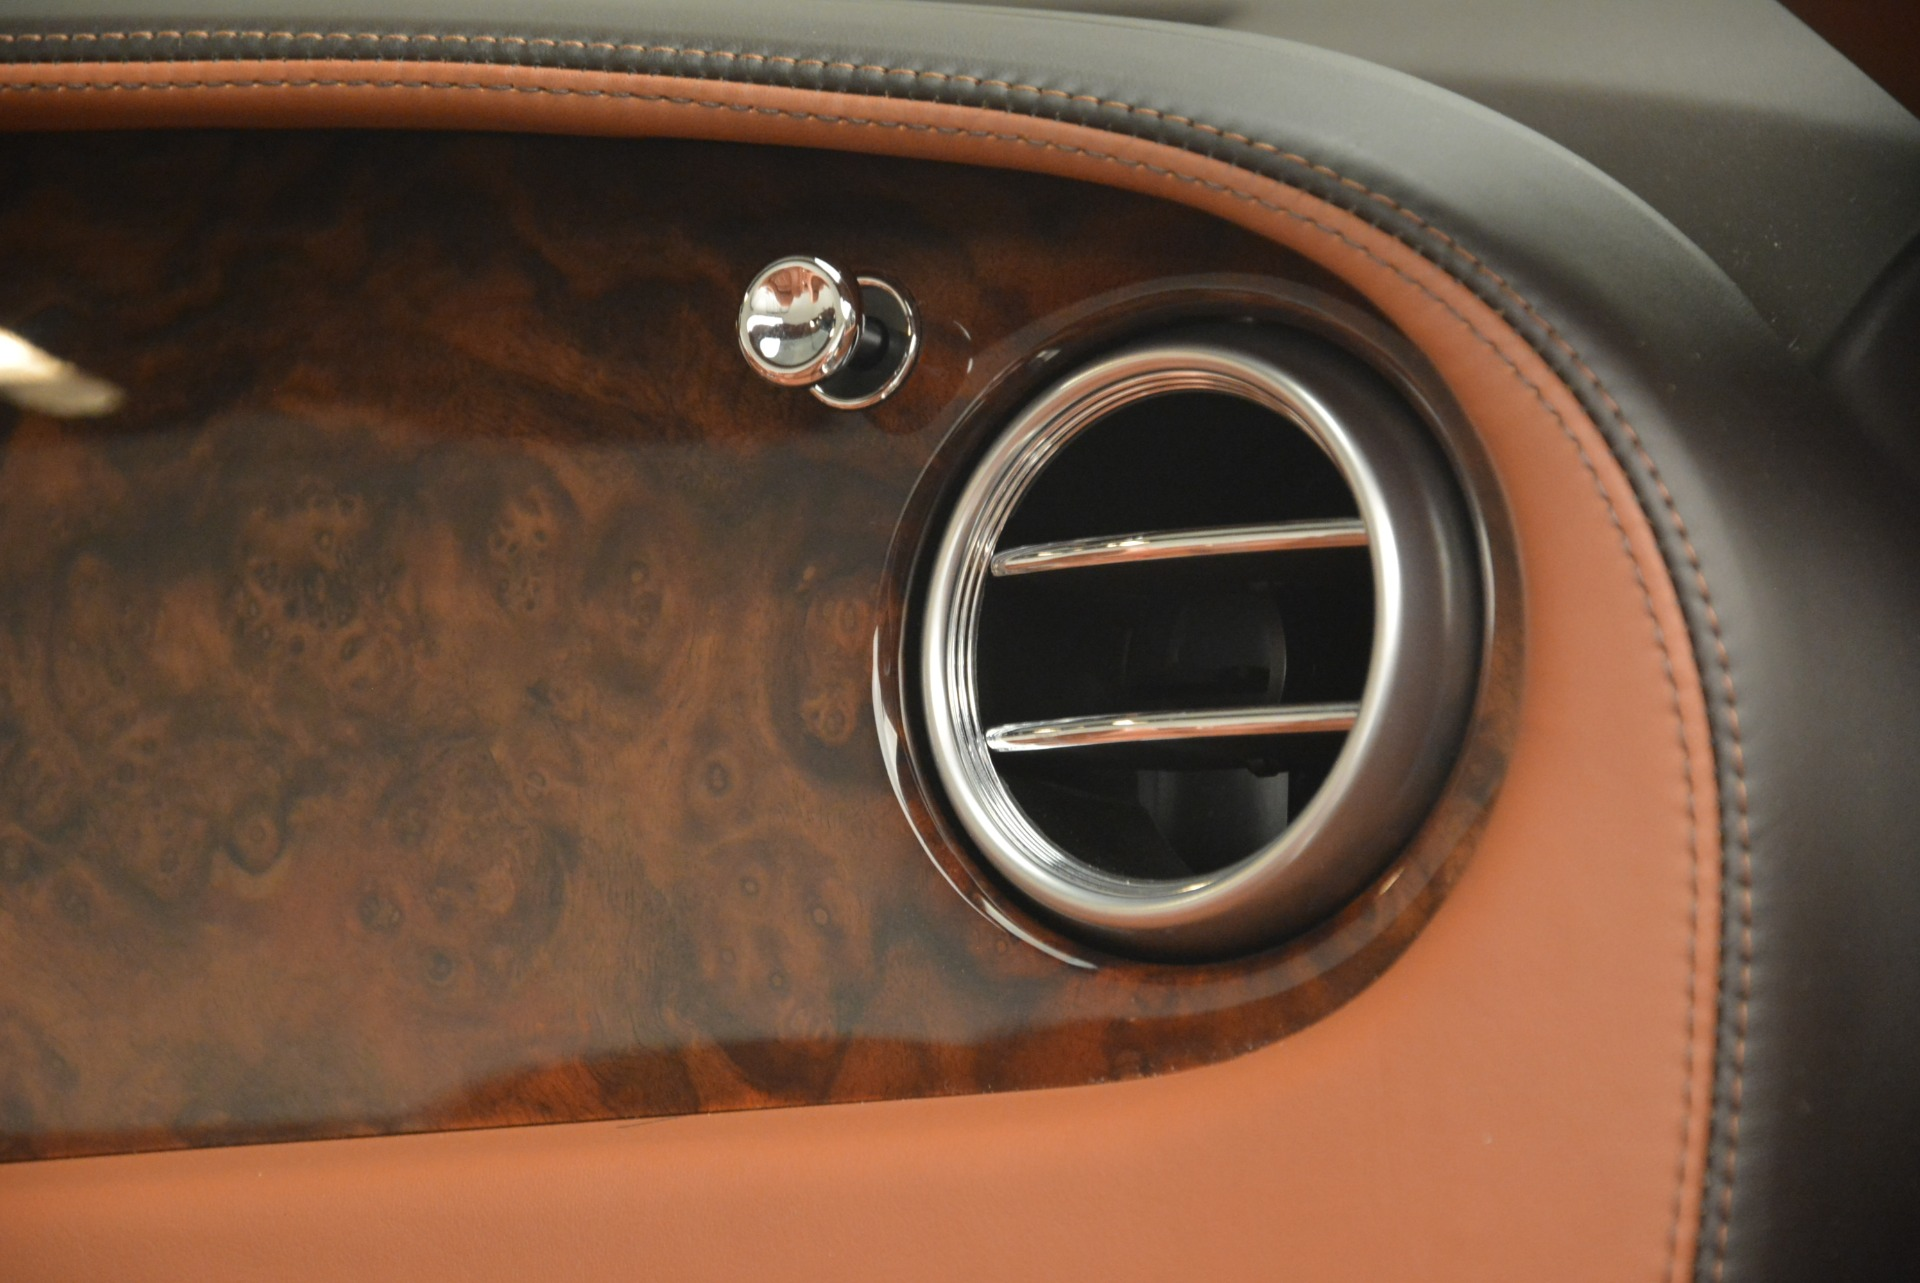 Used 2008 Bentley Continental GT W12 For Sale In Westport, CT 2190_p46